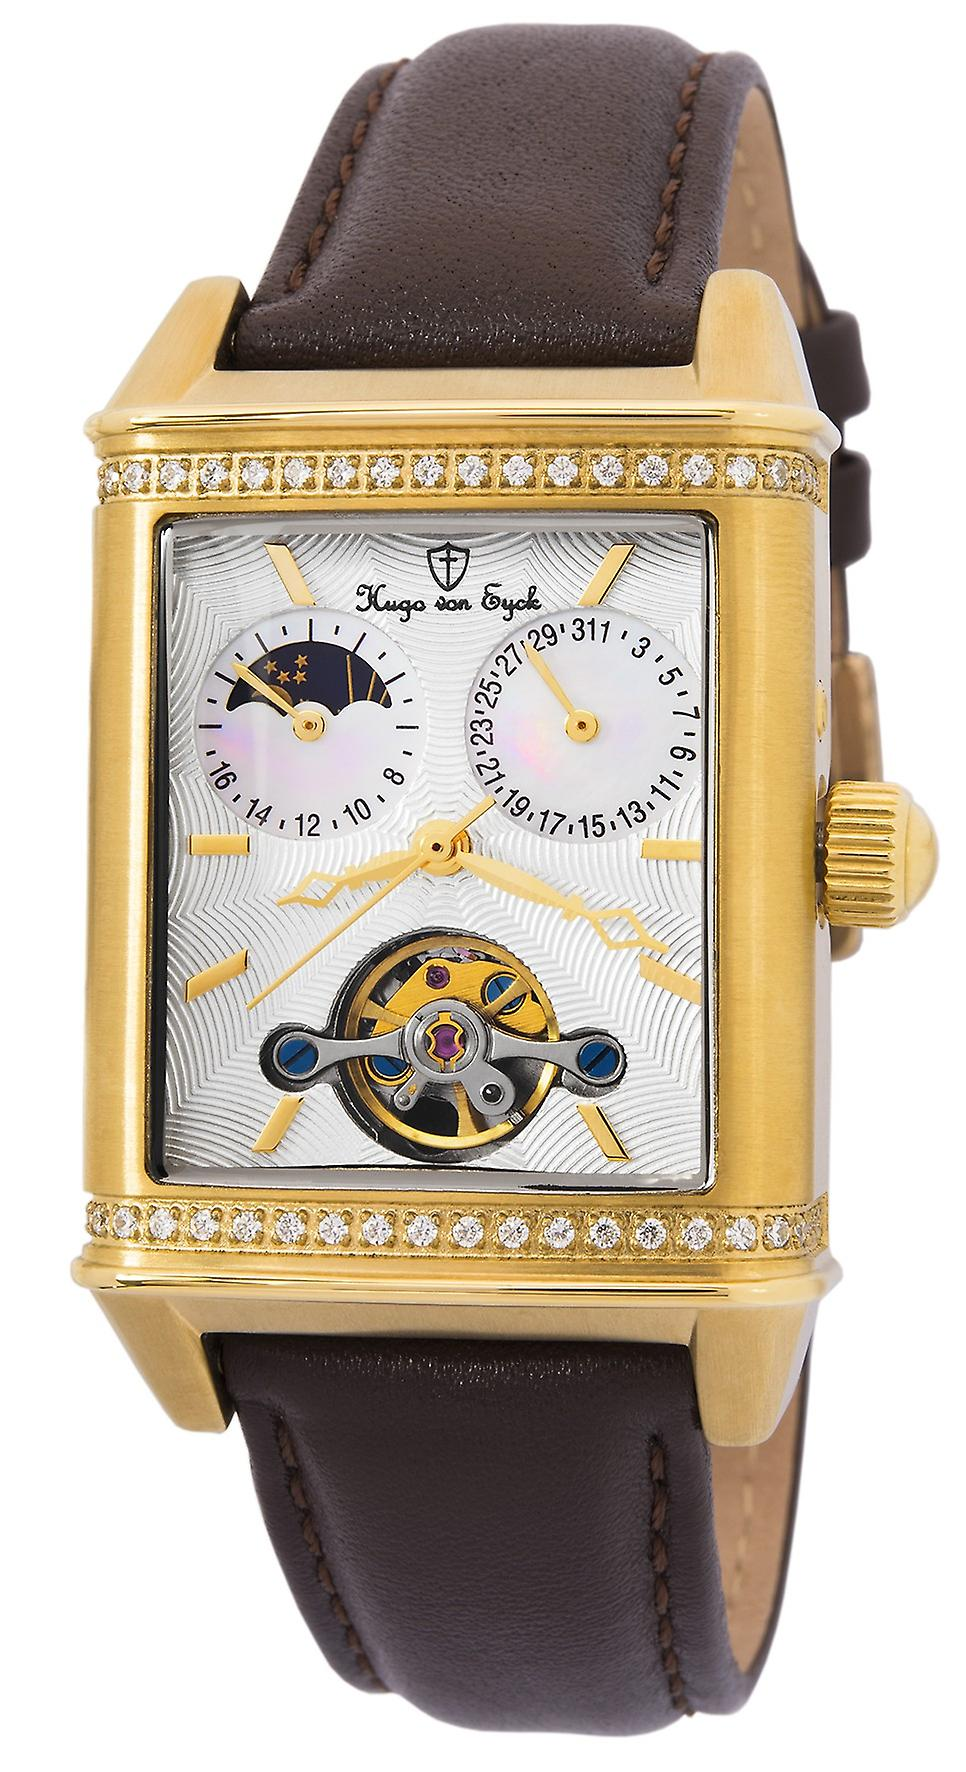 Hugo von Eyck ladies automatic watch Caelum, HE211-285